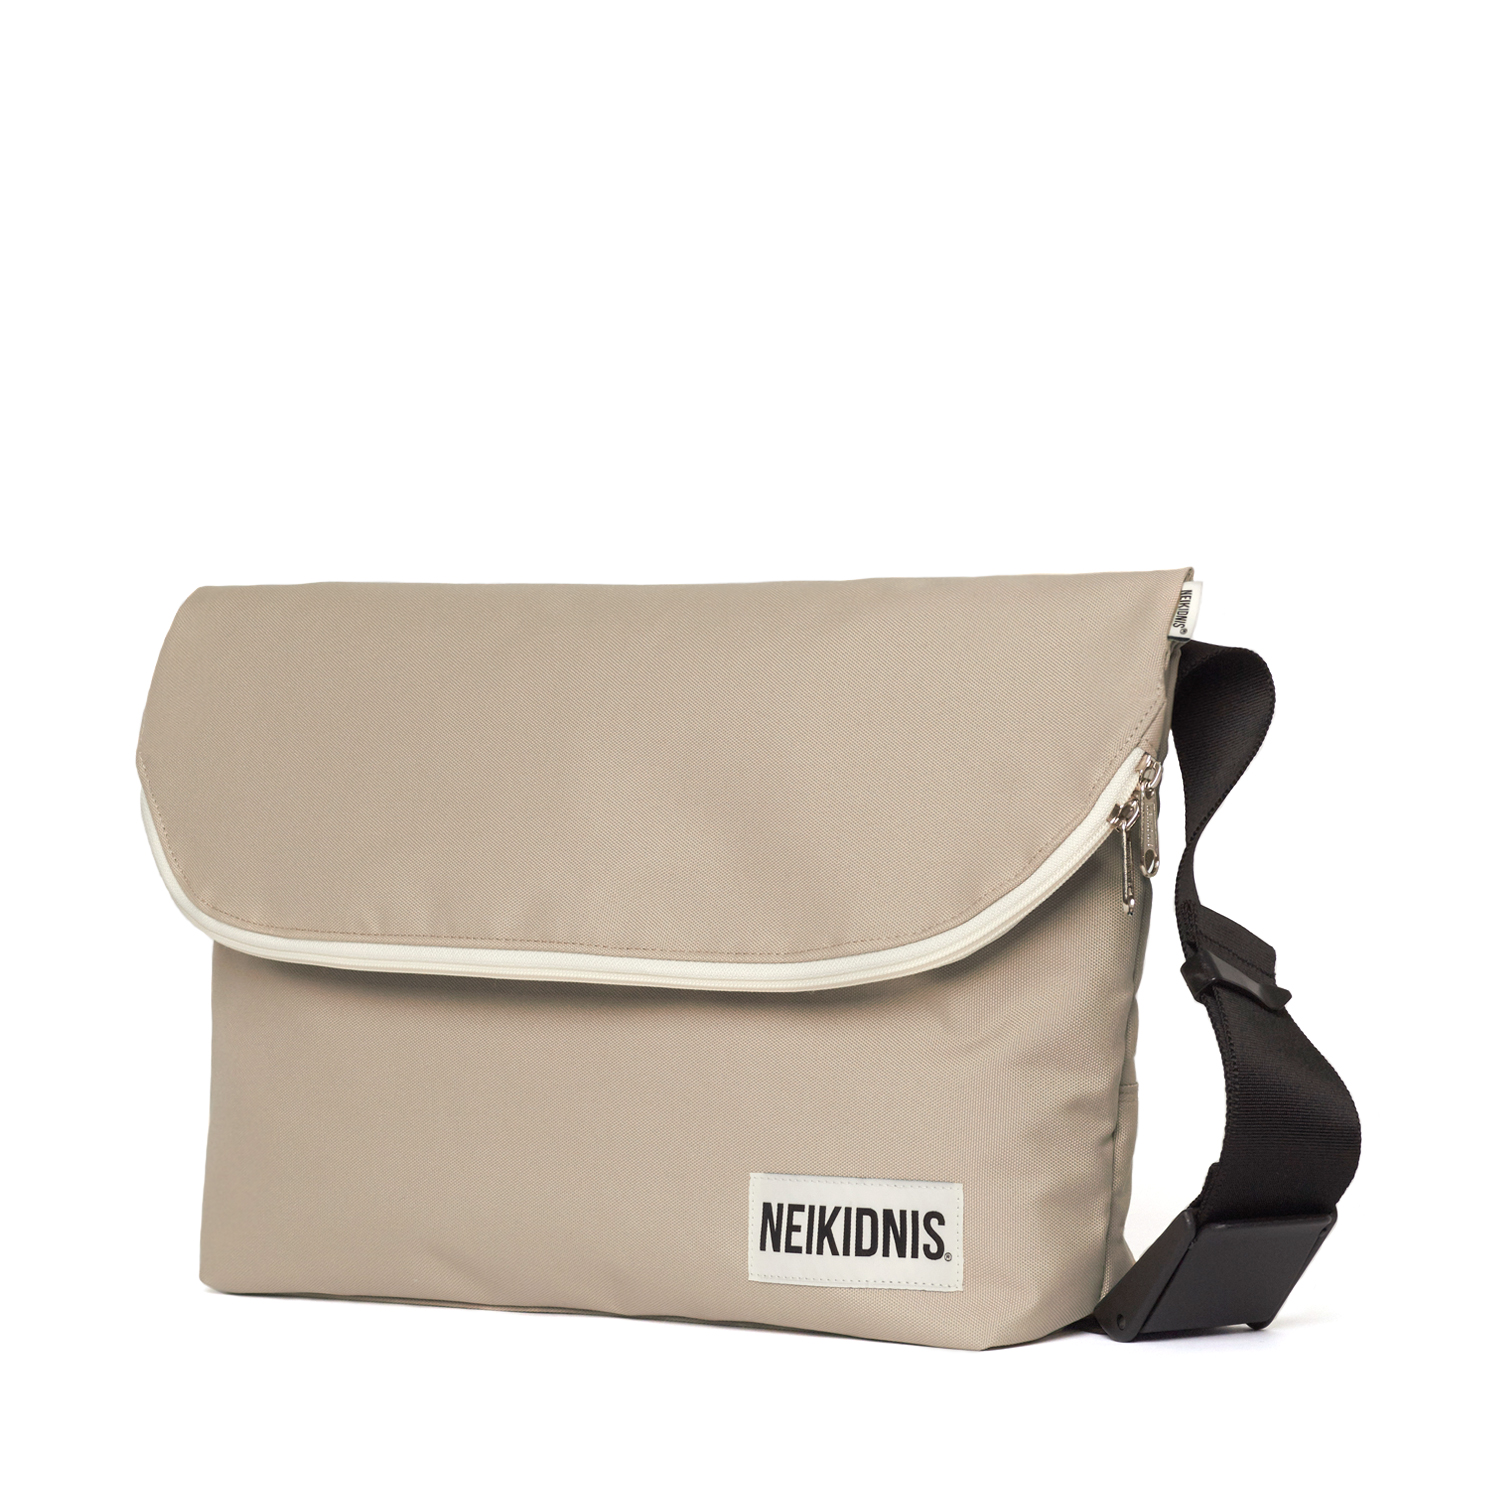 STANDARD MESSENGER BAG / BEIGE